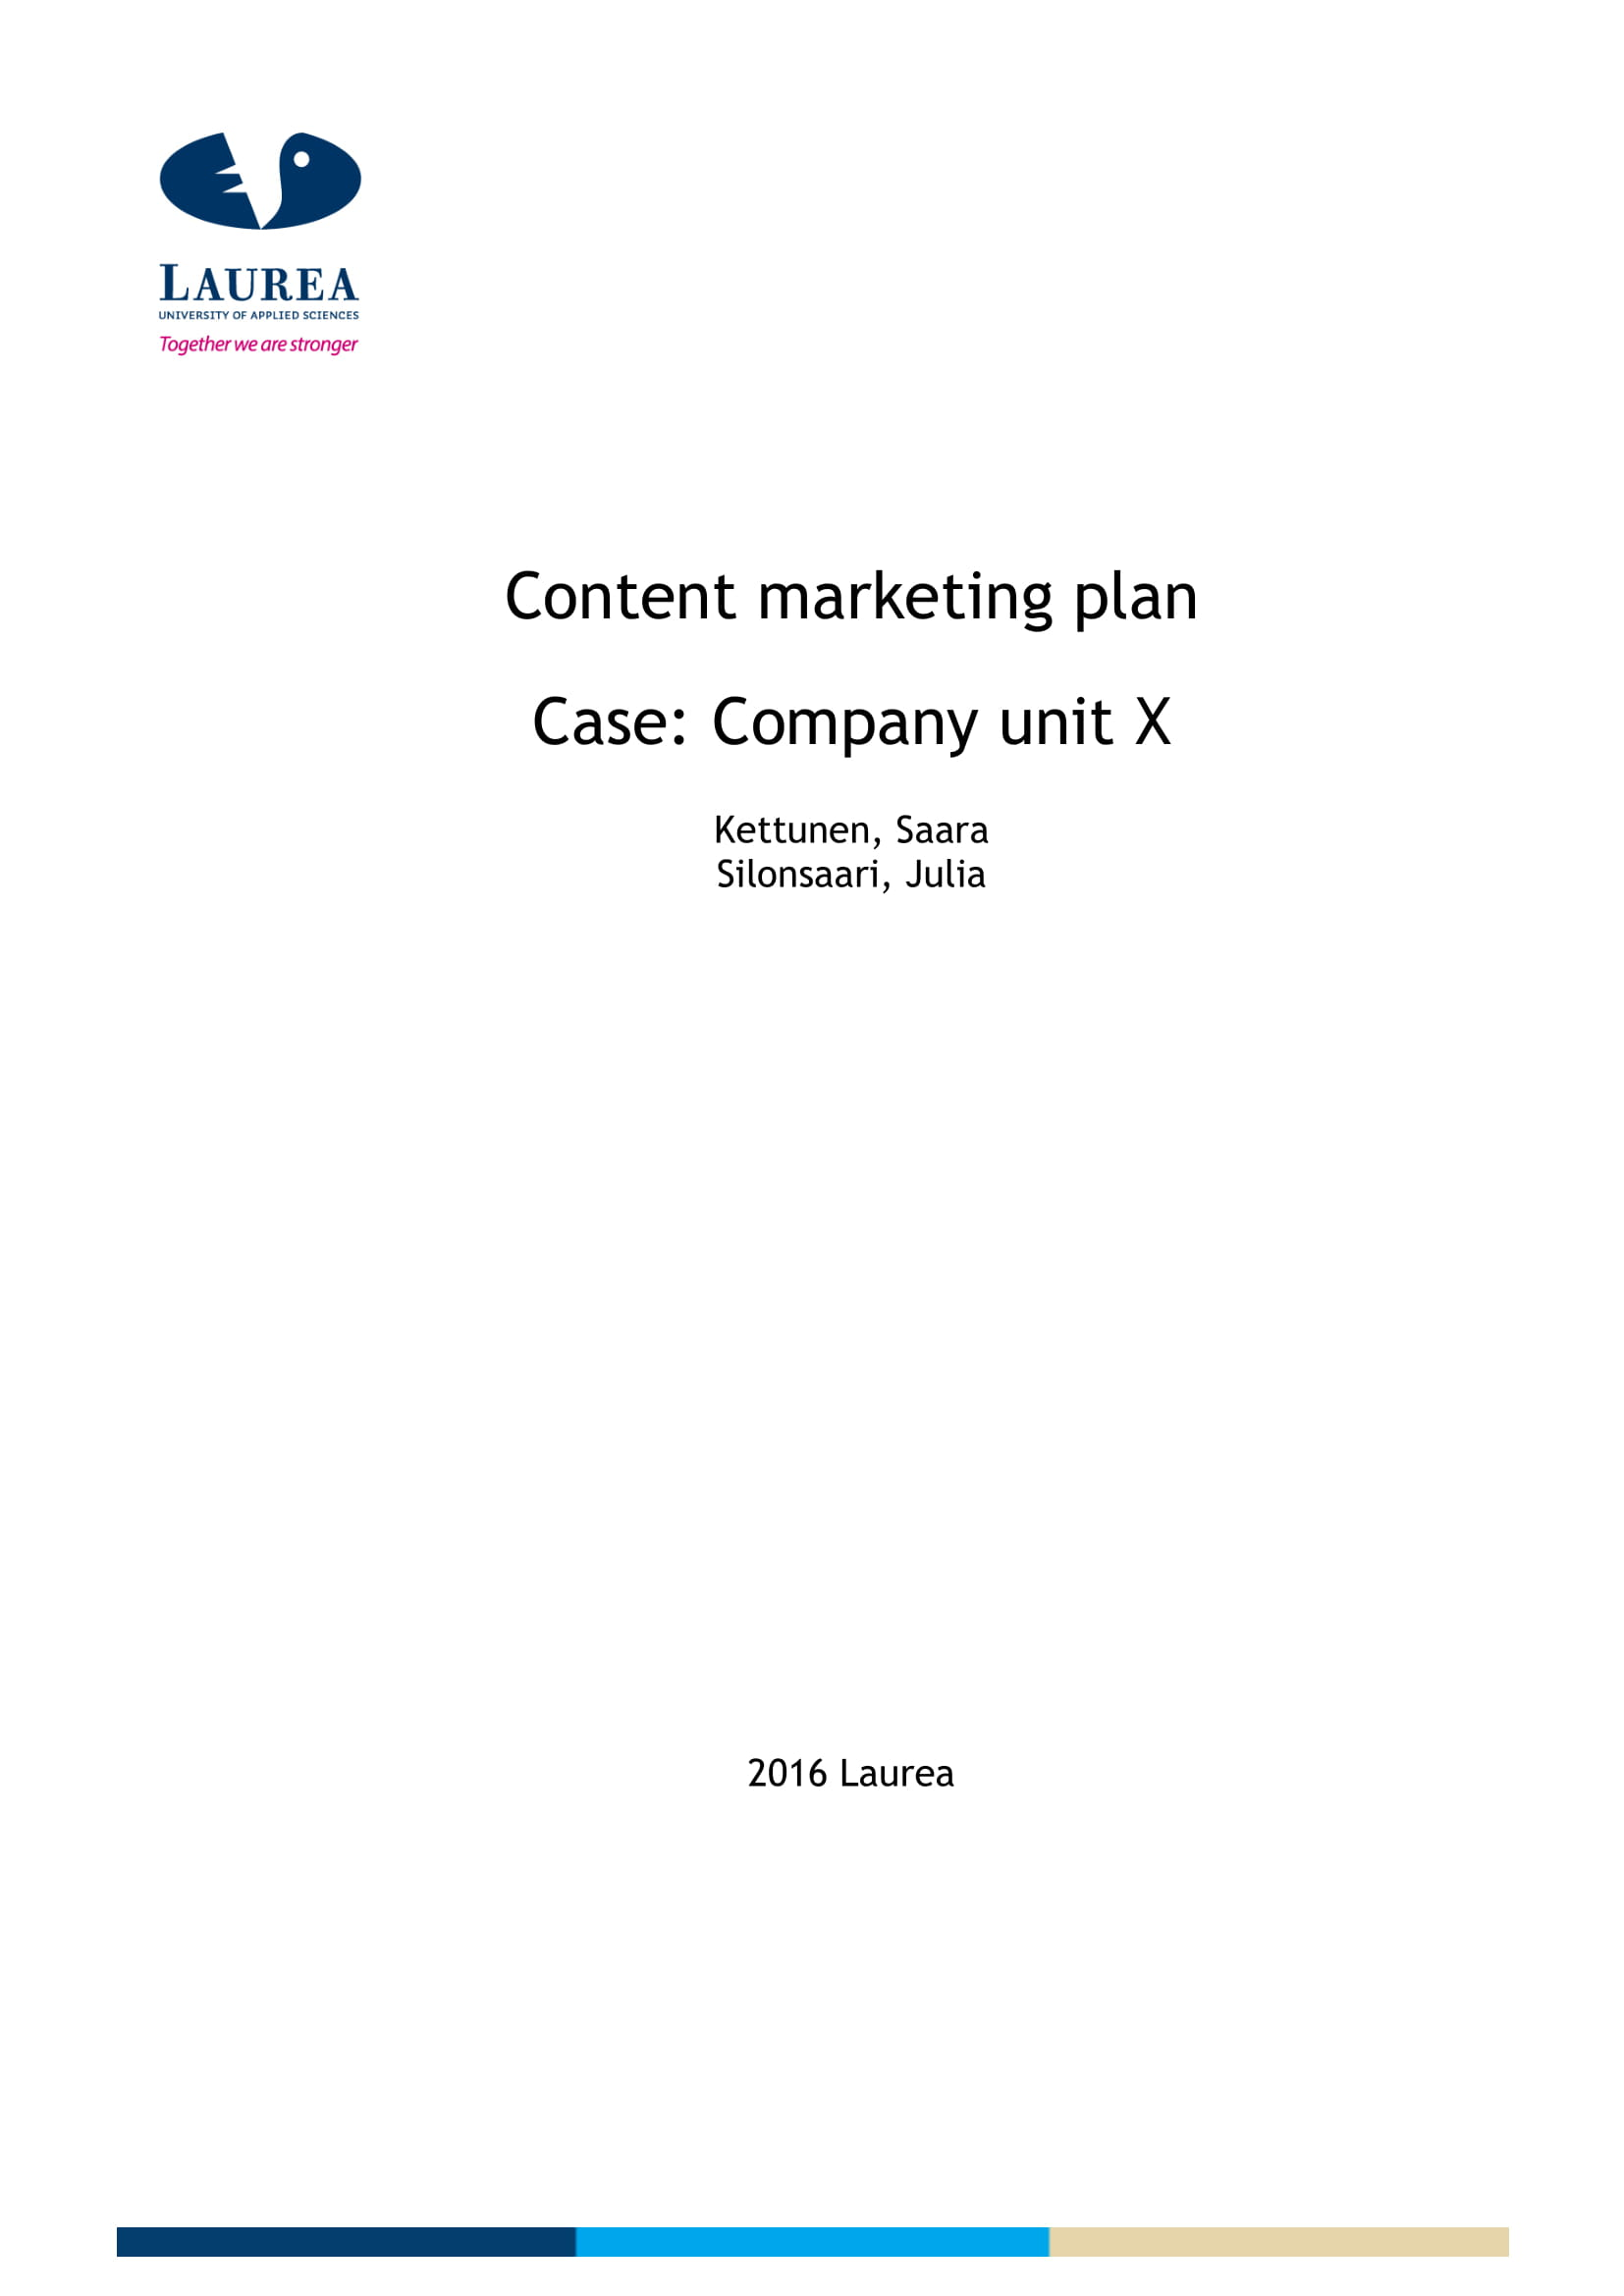 content marketing plan format example